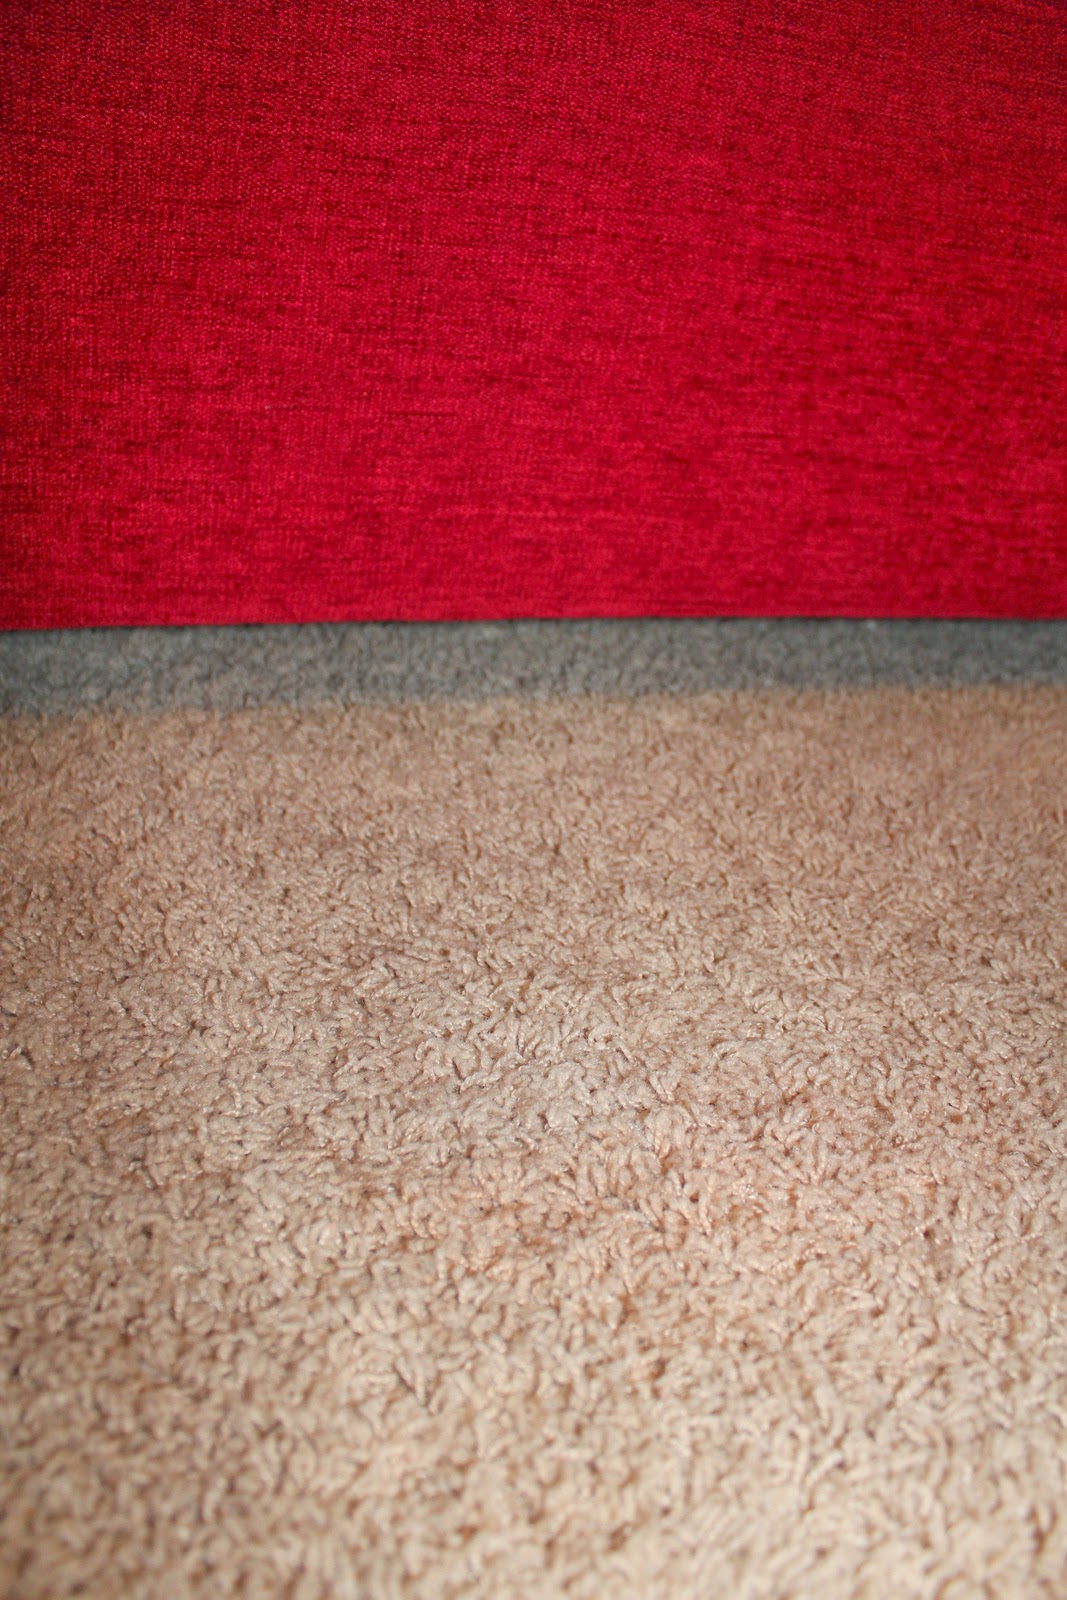 Harris sisters girltalk how to remove tough carpet stains - Remove carpet stains ...